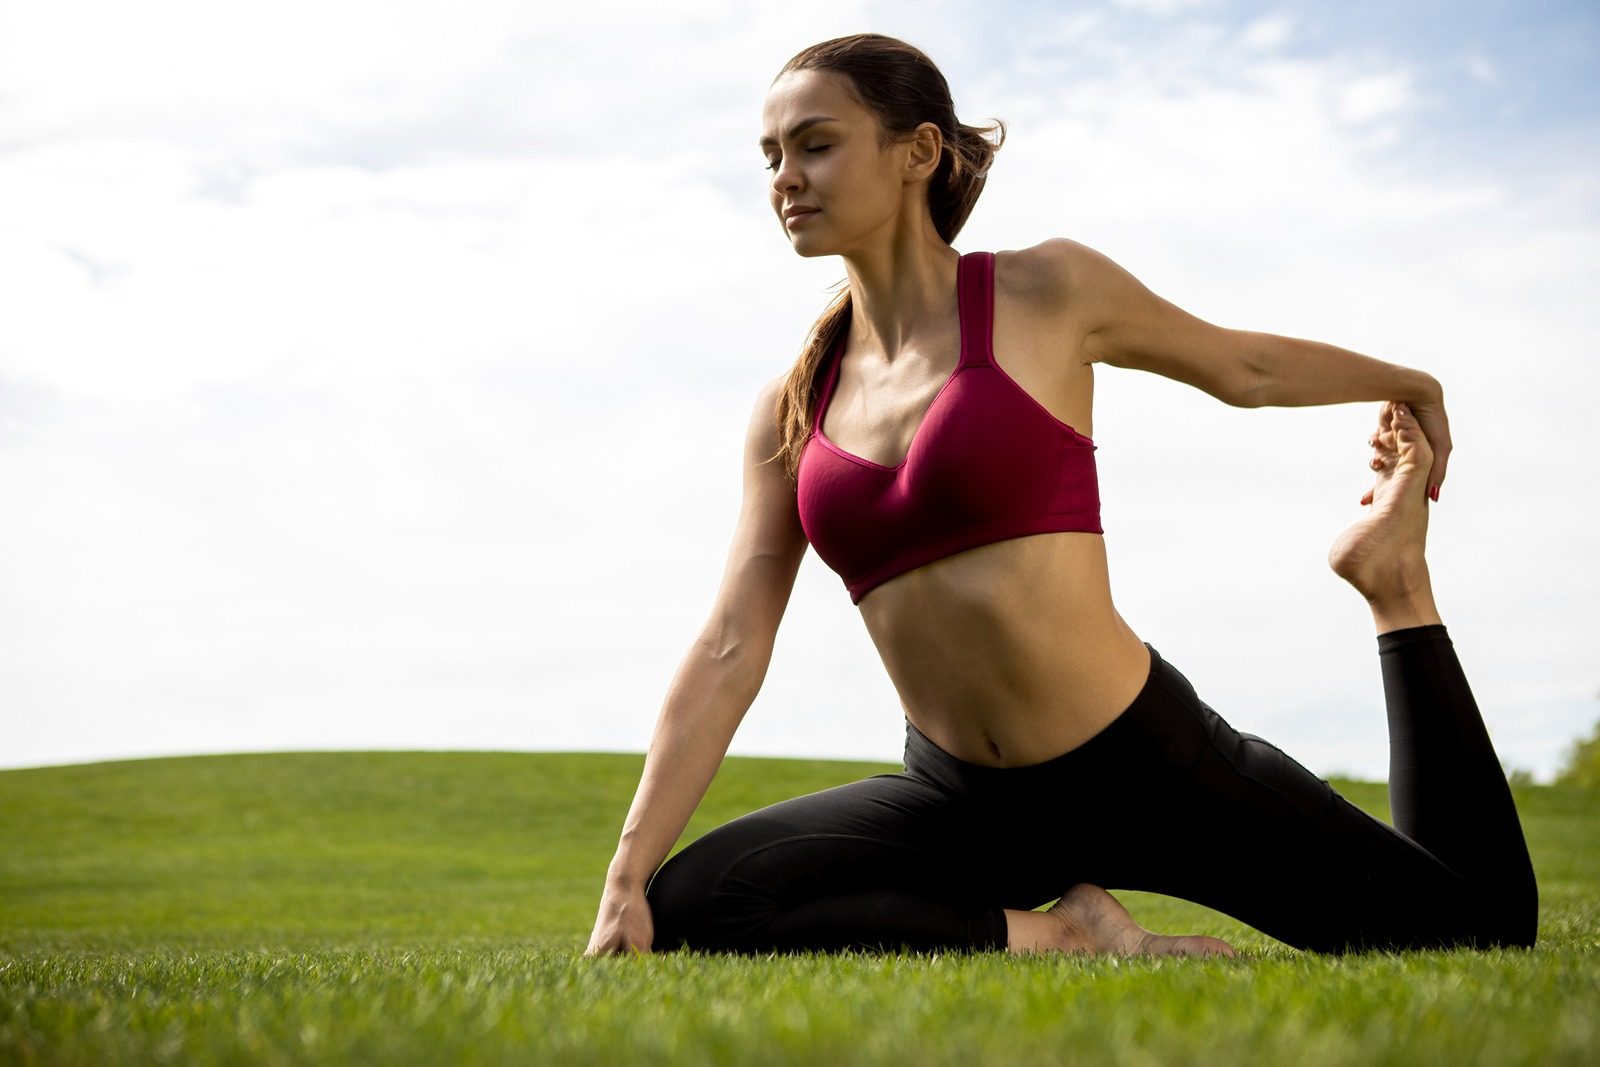 Kripalu Yoga Is A Type Of Yoga With An Empathetic Approach